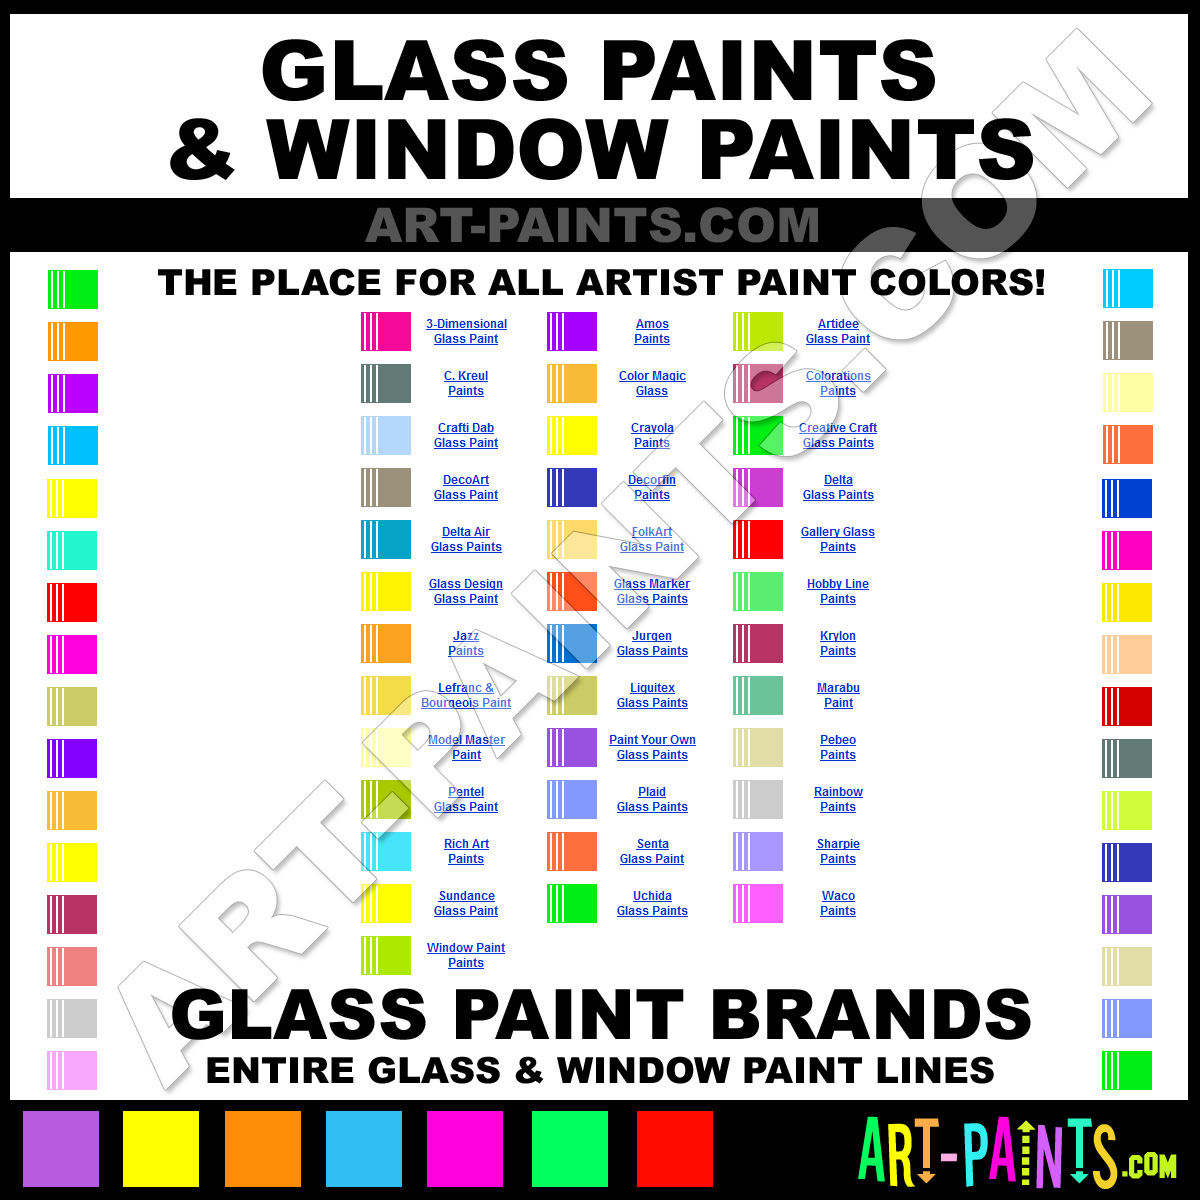 Brands Of Glass Paints